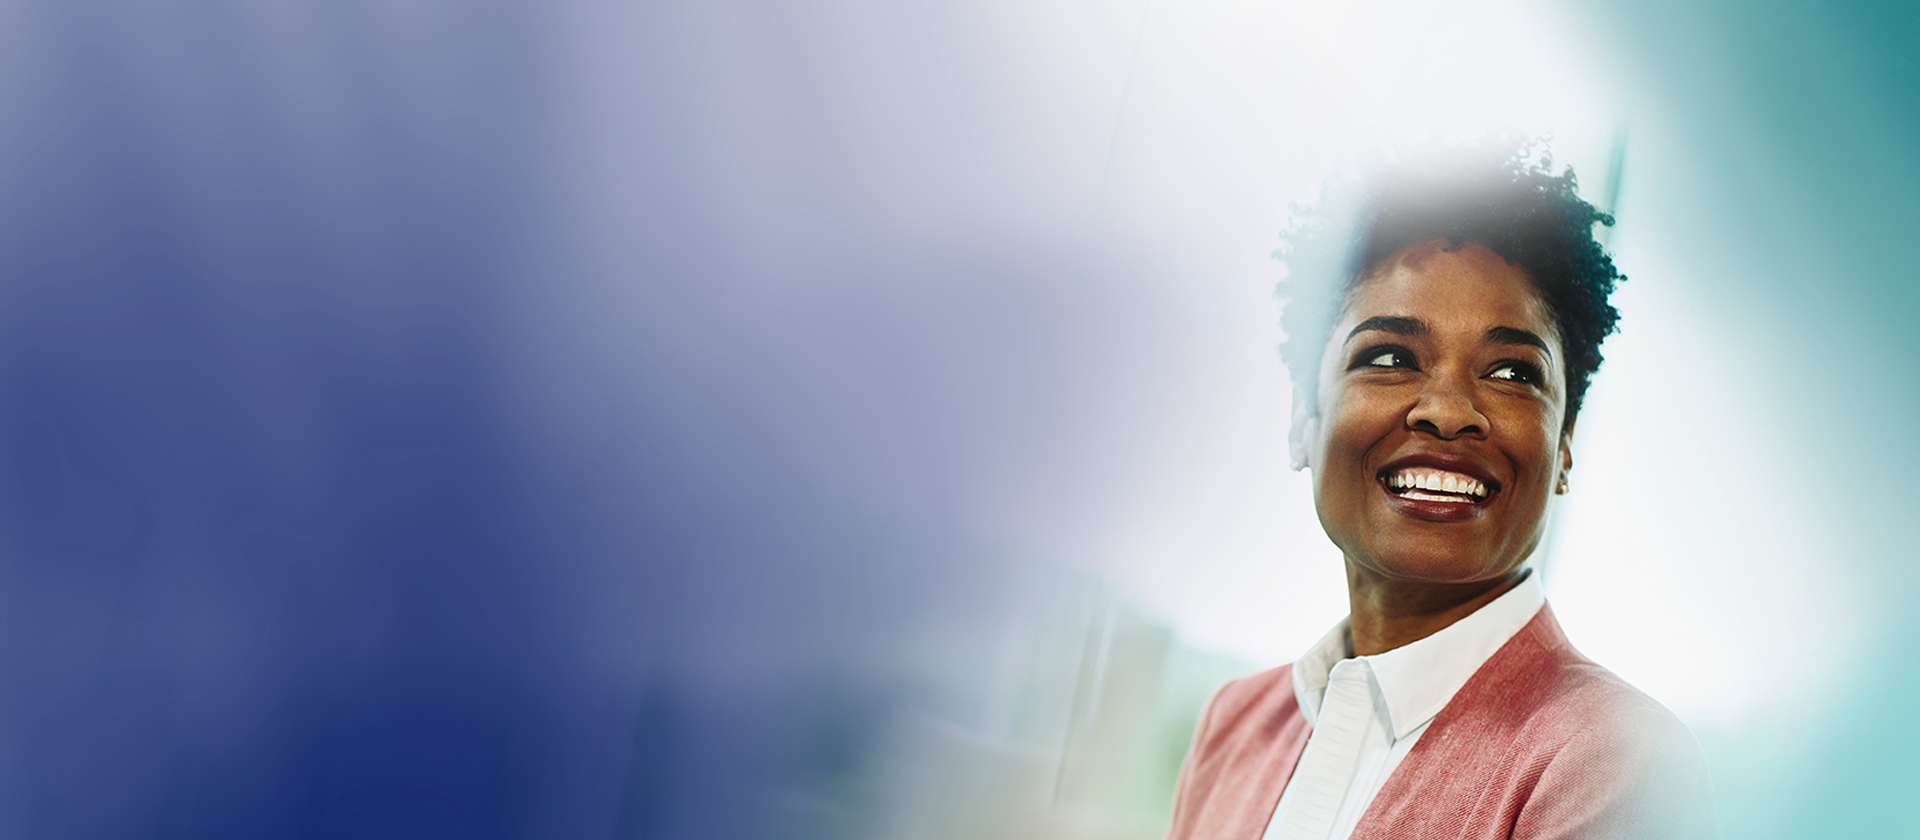 ready to get started with randstad professionals?